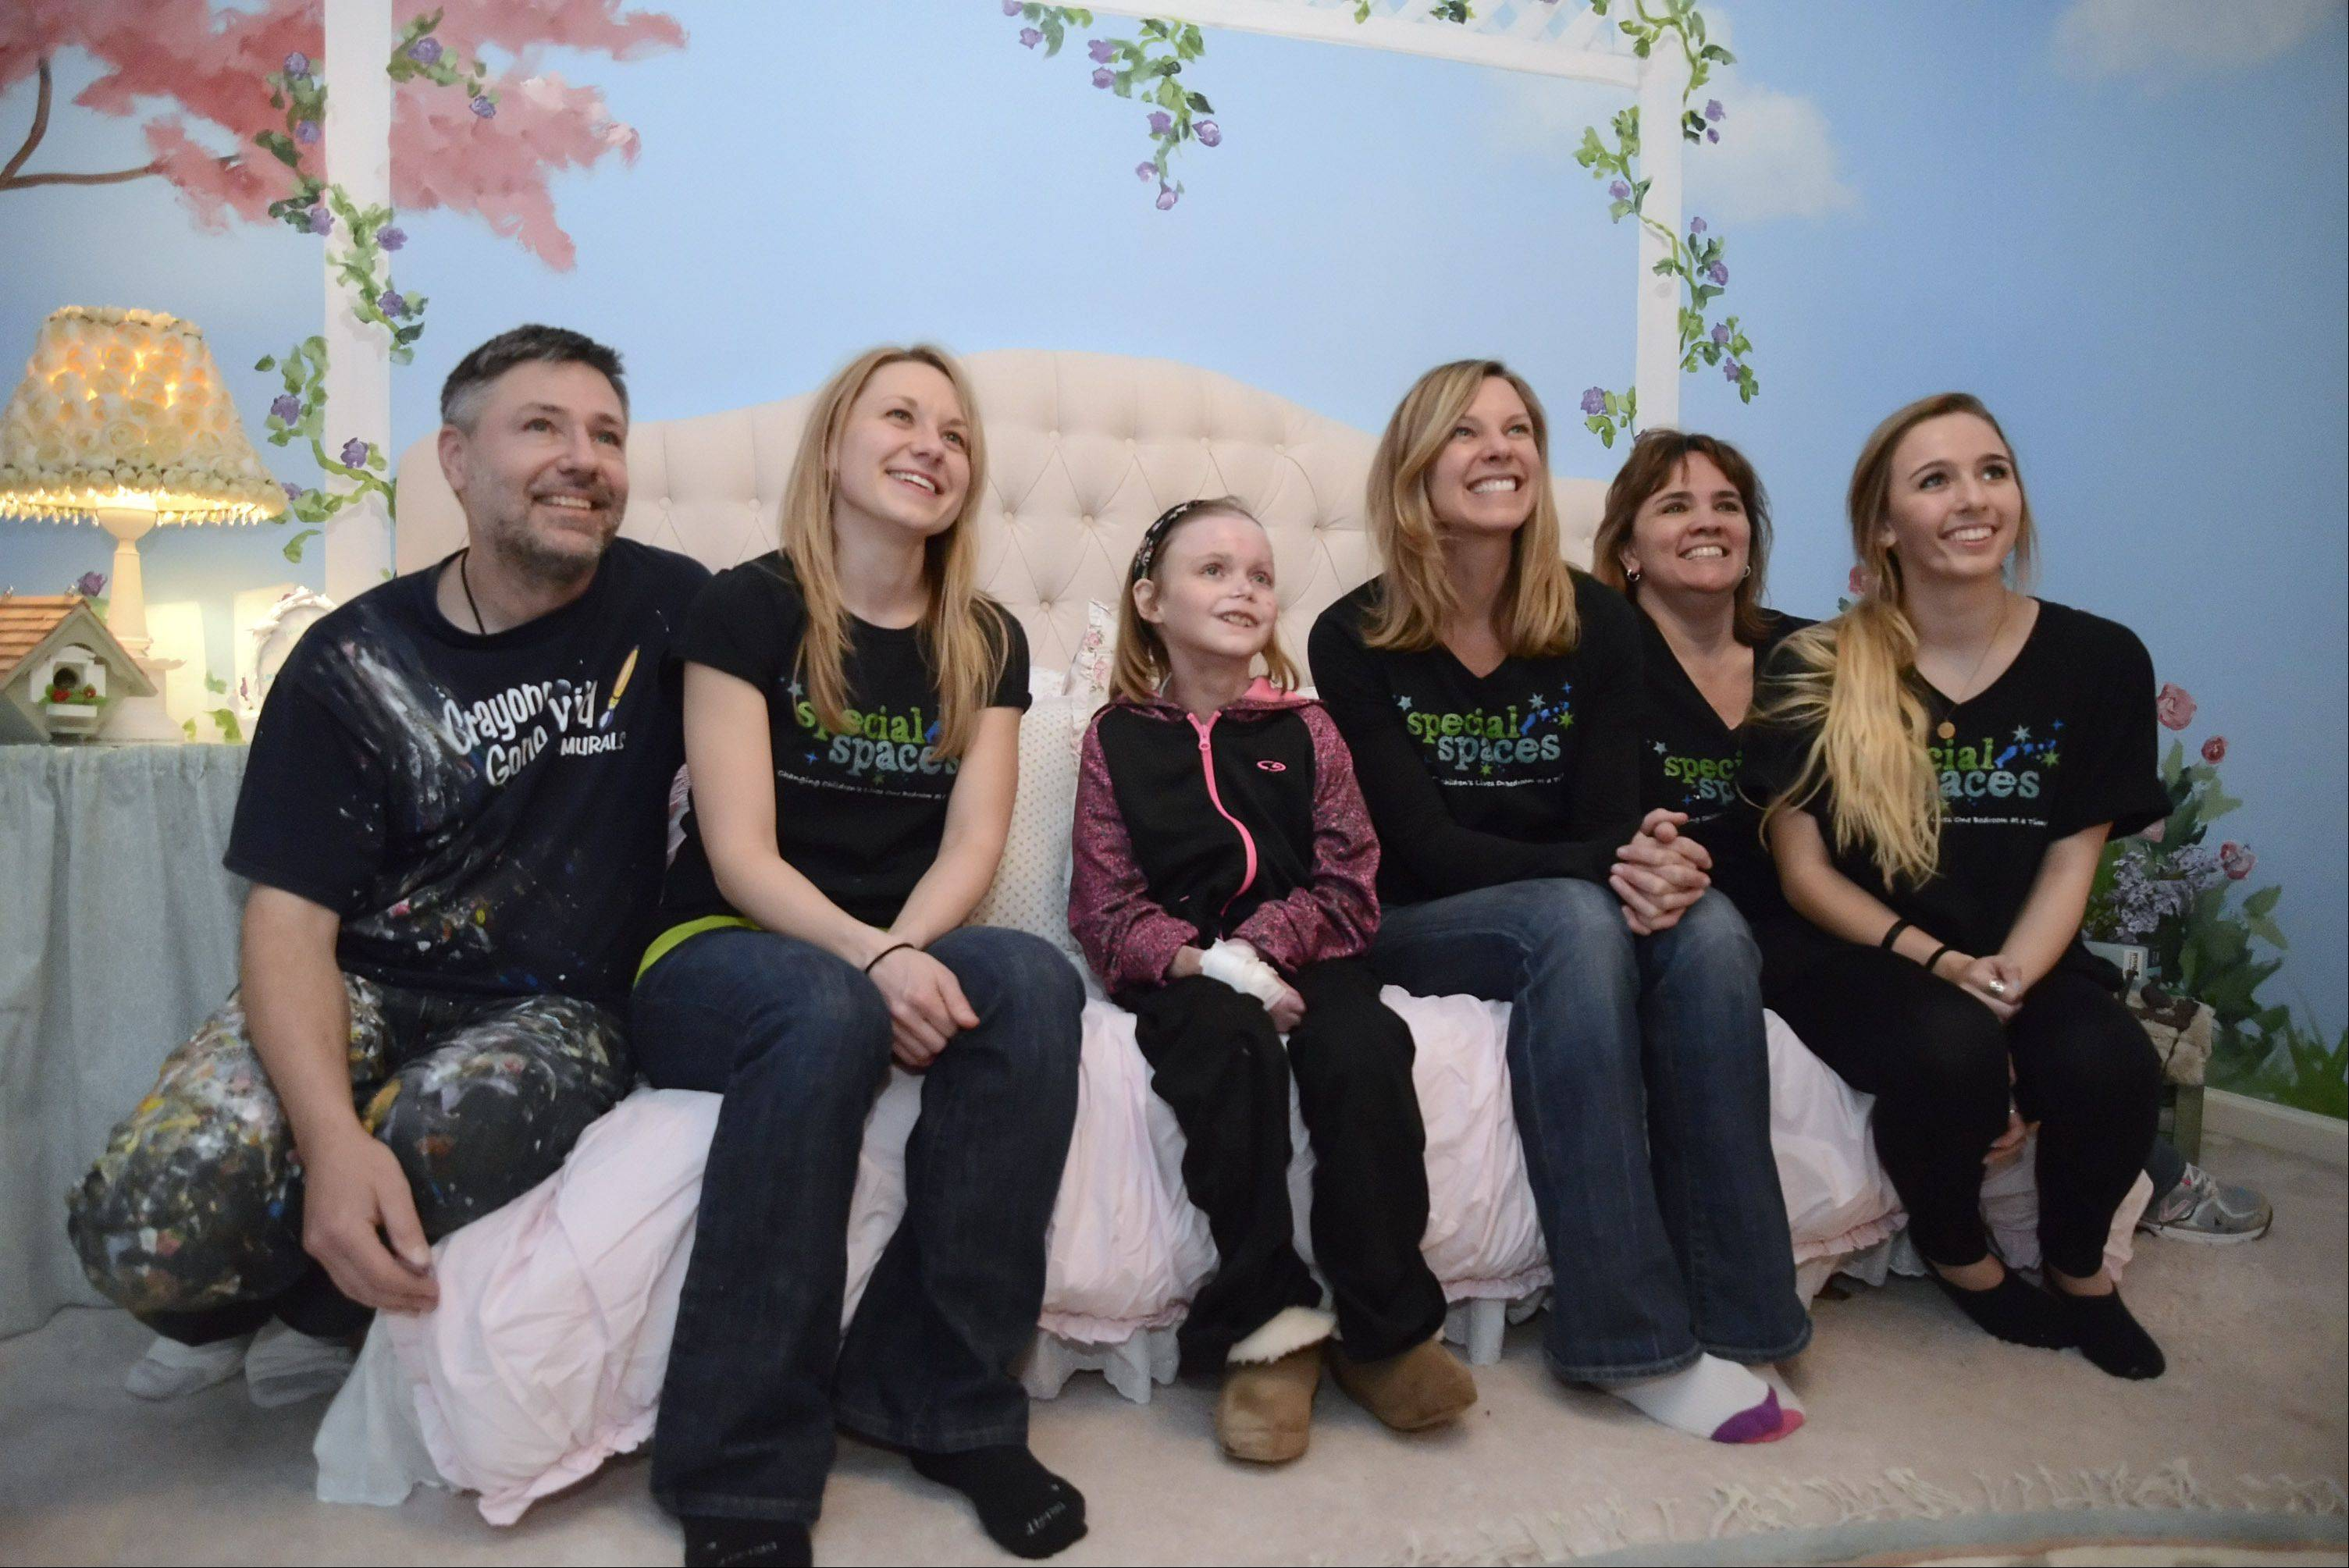 Catharine Steiner, 16, of St. Charles, center, sits with the Special Spaces Chicagoland team for photos after they made over her bedroom in one day. From left to right, Ken Markiewicz, Andrea Schwemin, who designed the room, Catharine, Kelly Knox, Judy Markiewicz and daughter Jamie Markiewicz. Lori McSpadden, not pictured, was also on the team.